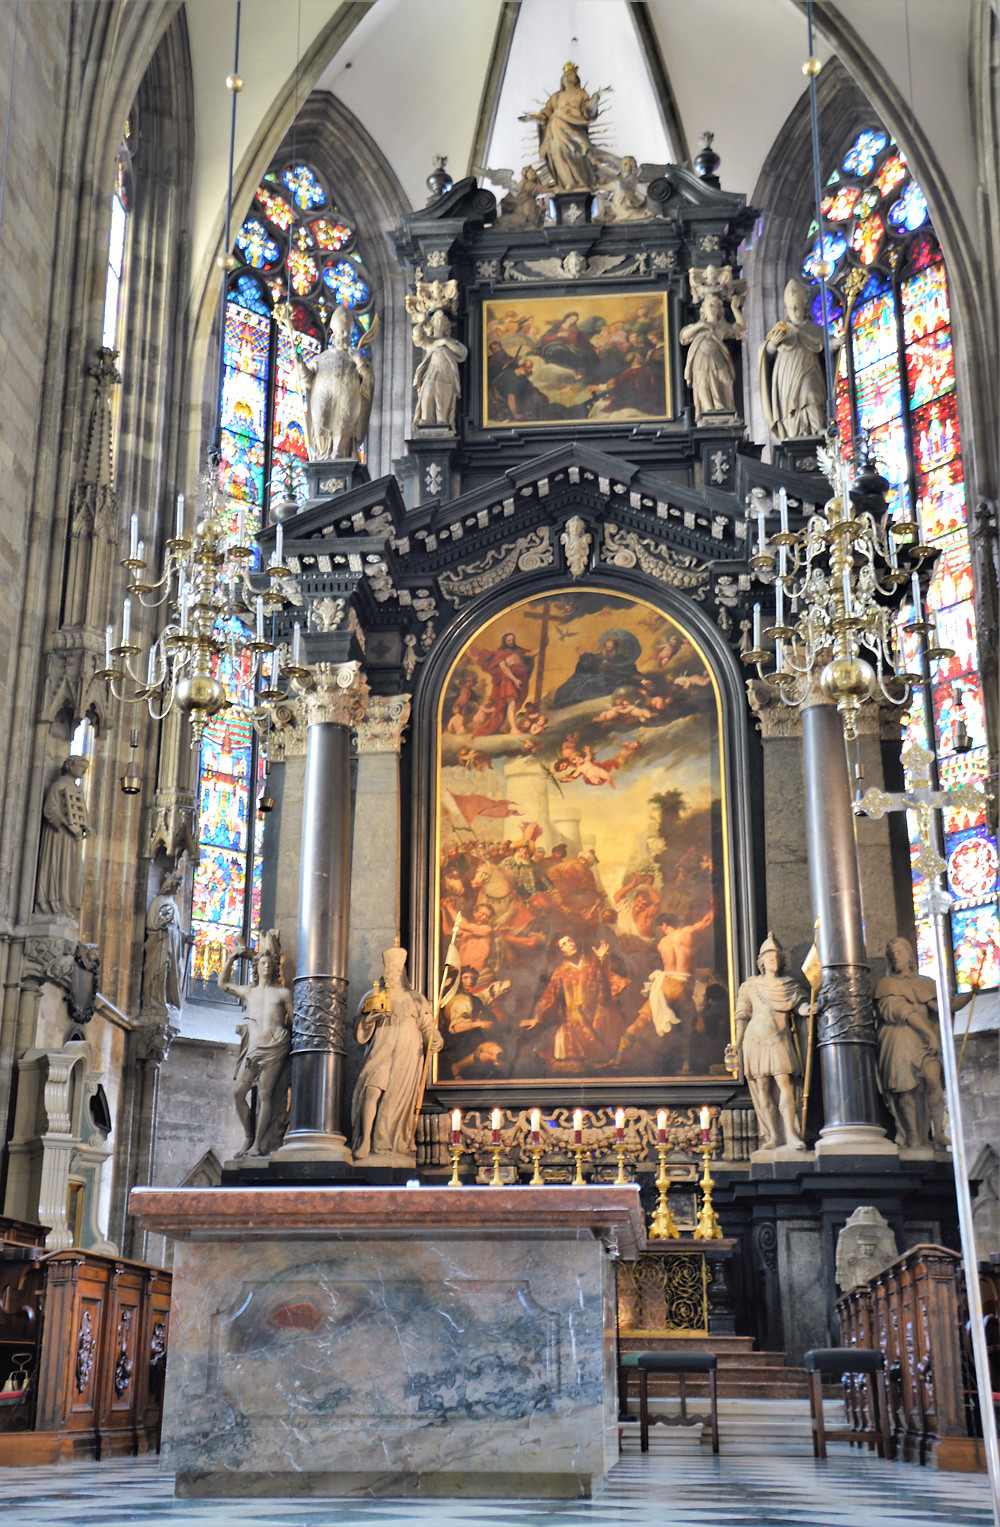 The High Altar of St Stephen's Cathedral in Vienna was built over 7 years from 1641 to 1647